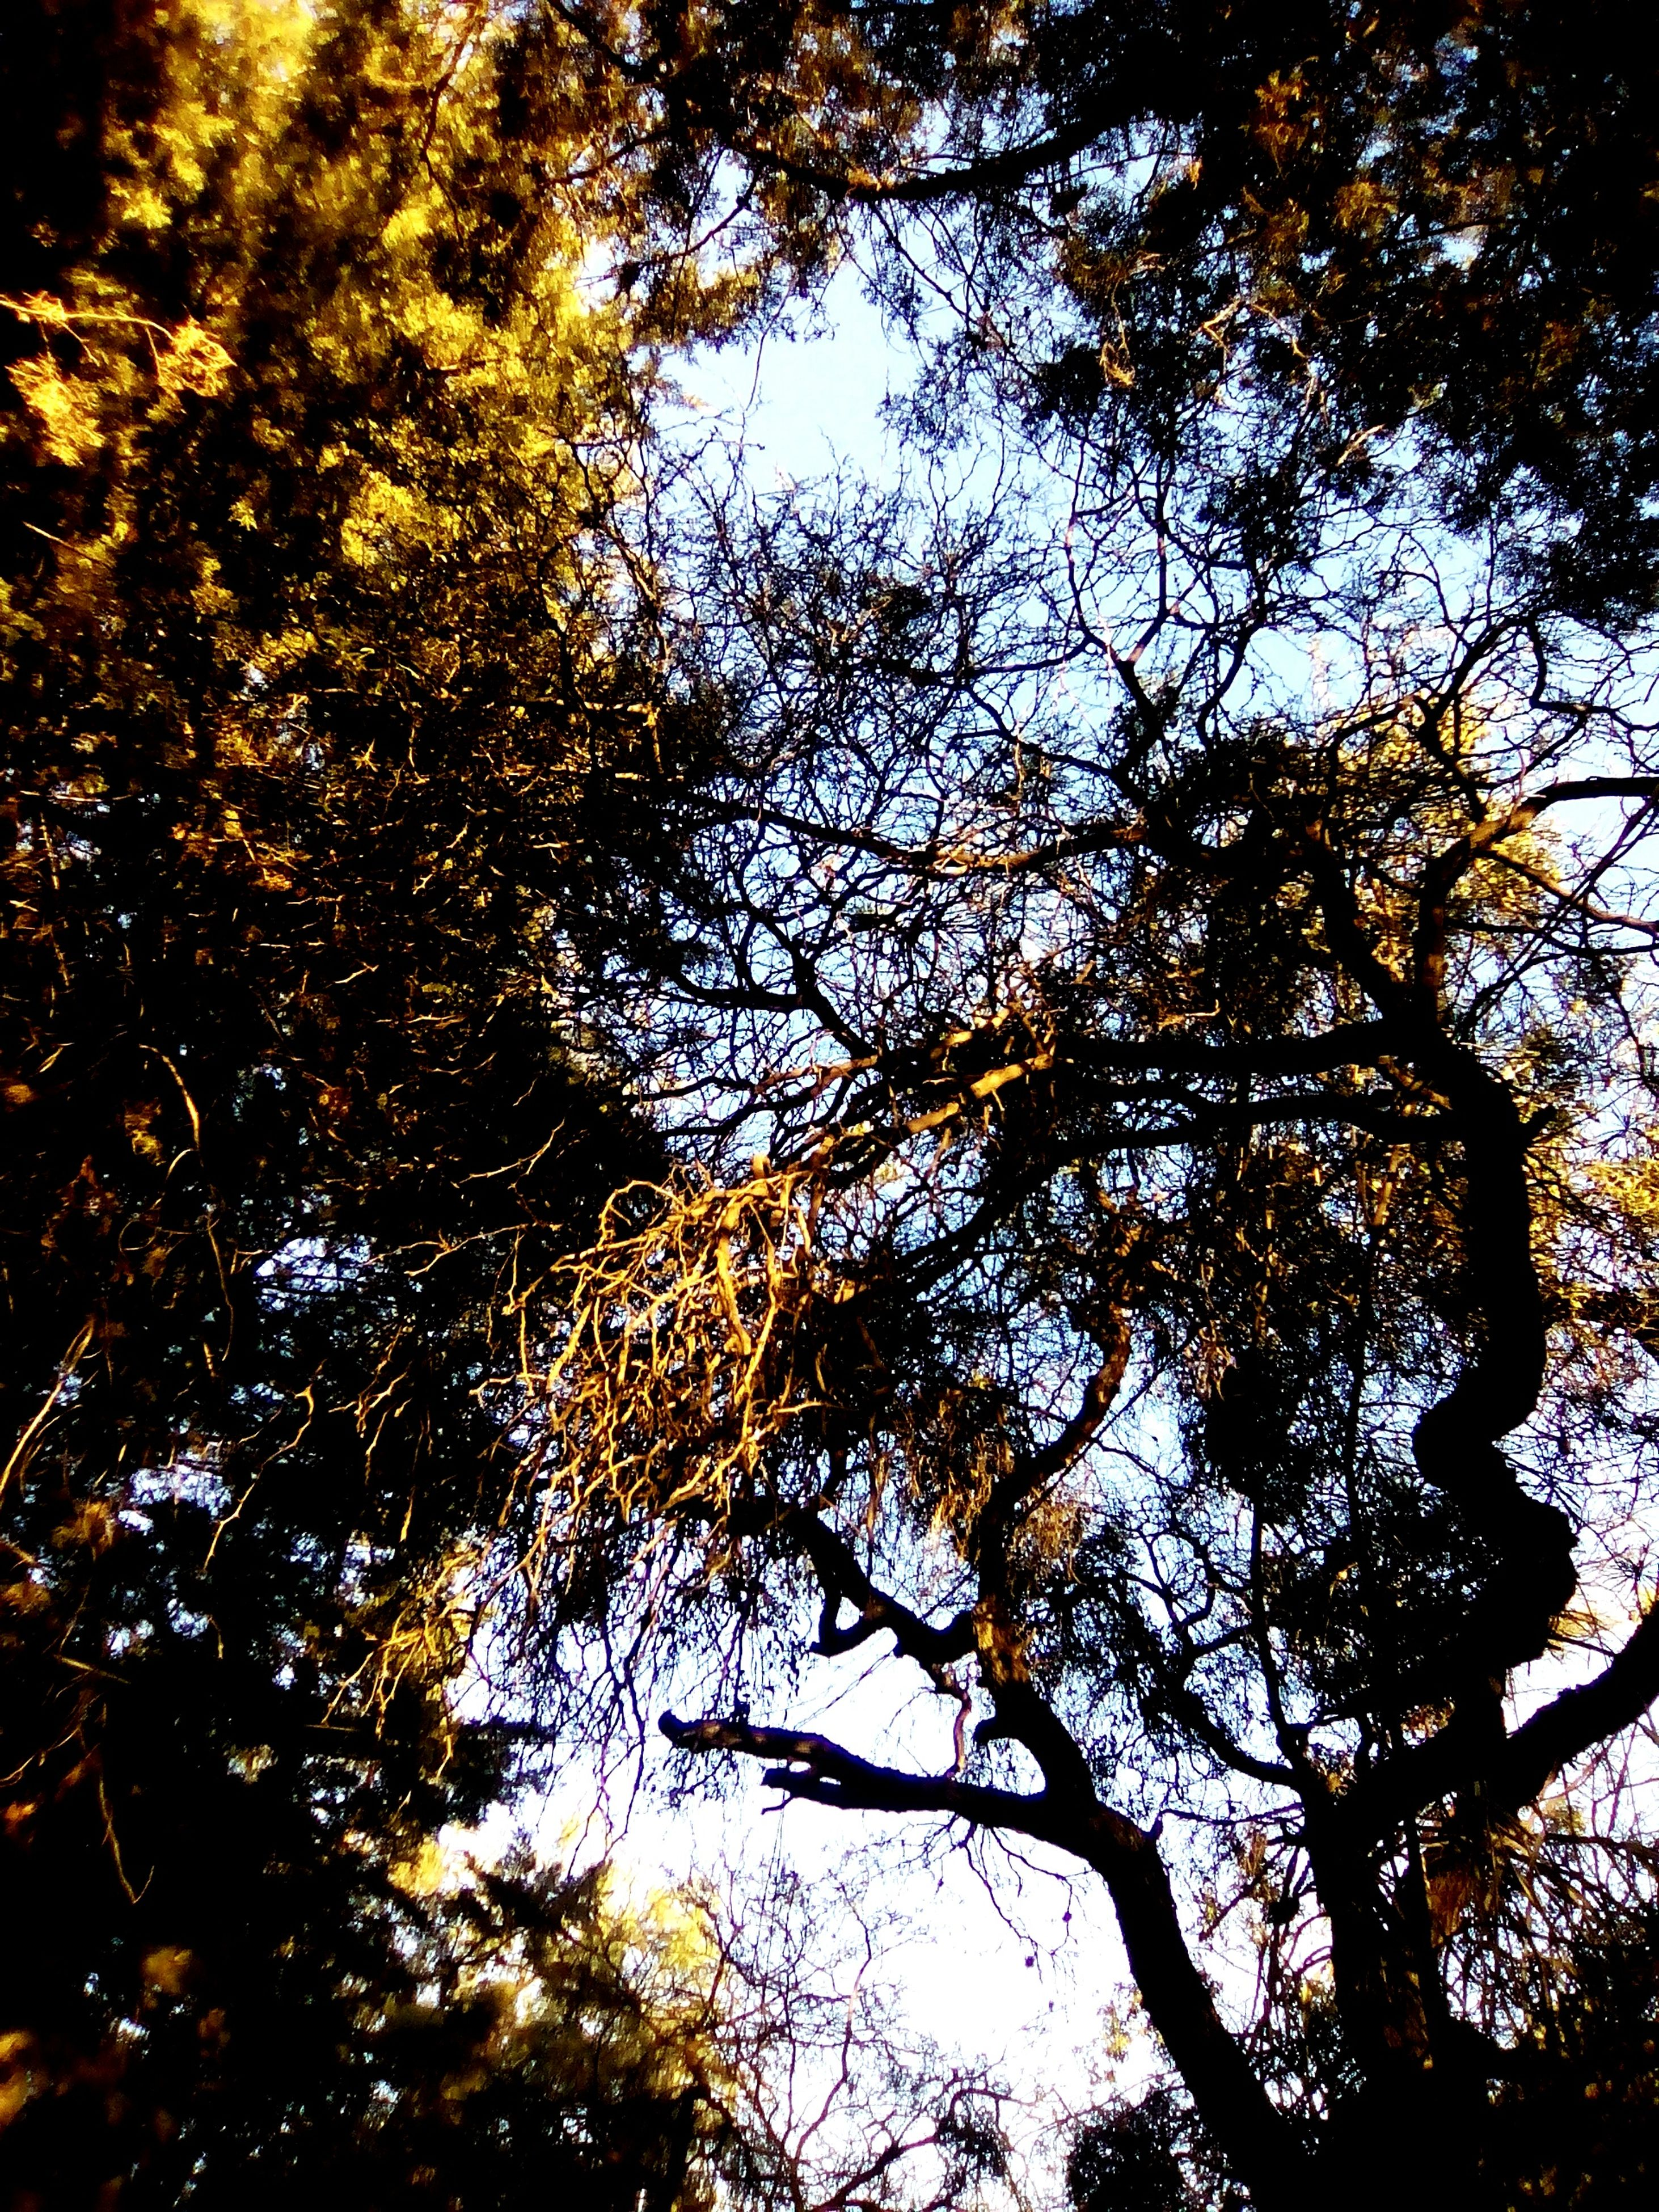 no people, tree, nature, sky, full frame, outdoors, backgrounds, beauty in nature, low angle view, branch, close-up, night